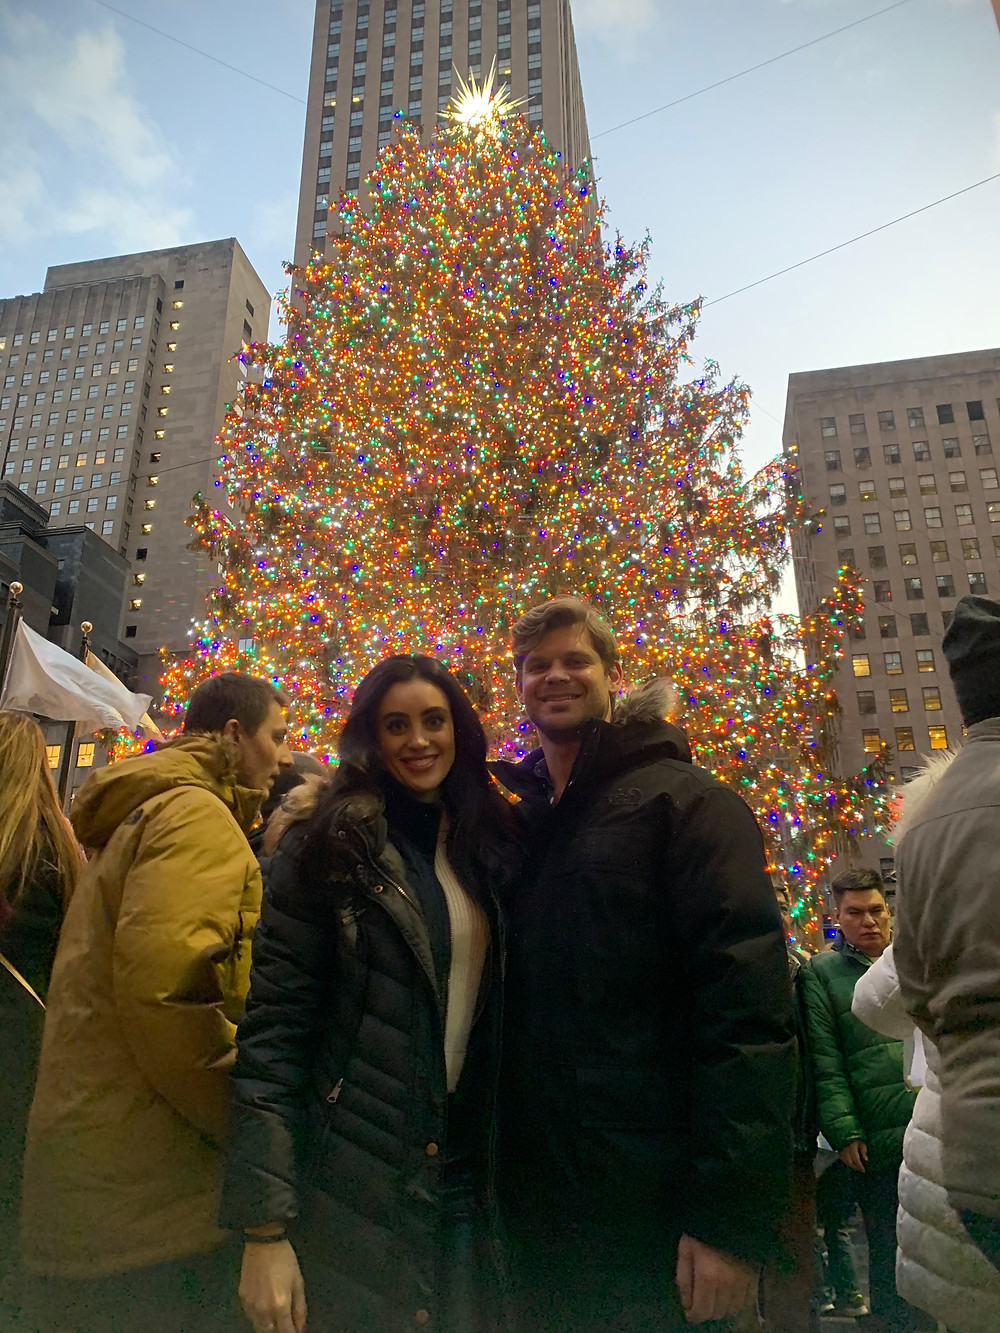 Rockefeller Christmas Tree- Things to do in NYC over holiday